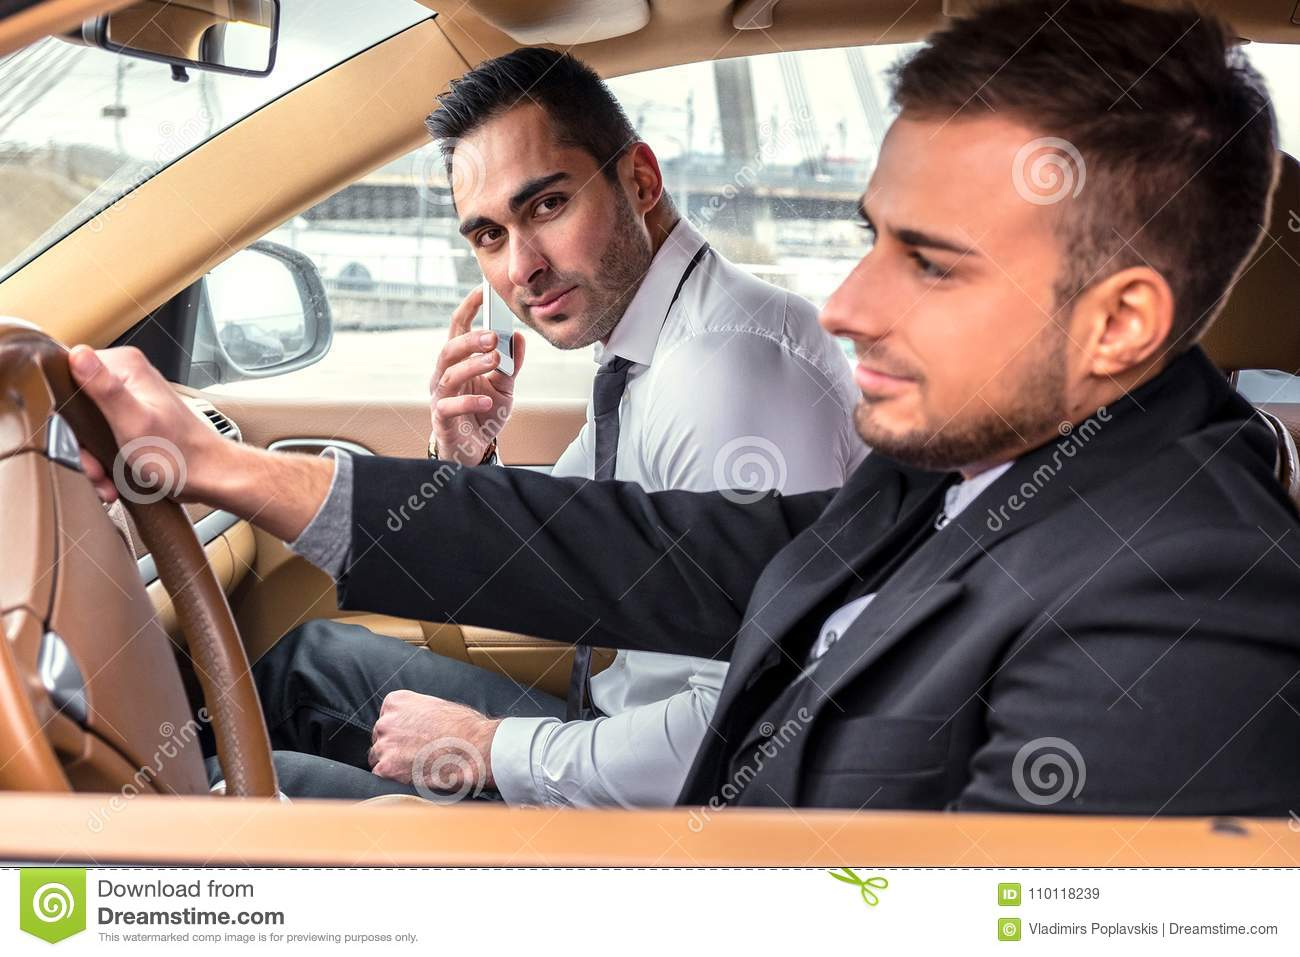 Two males in car